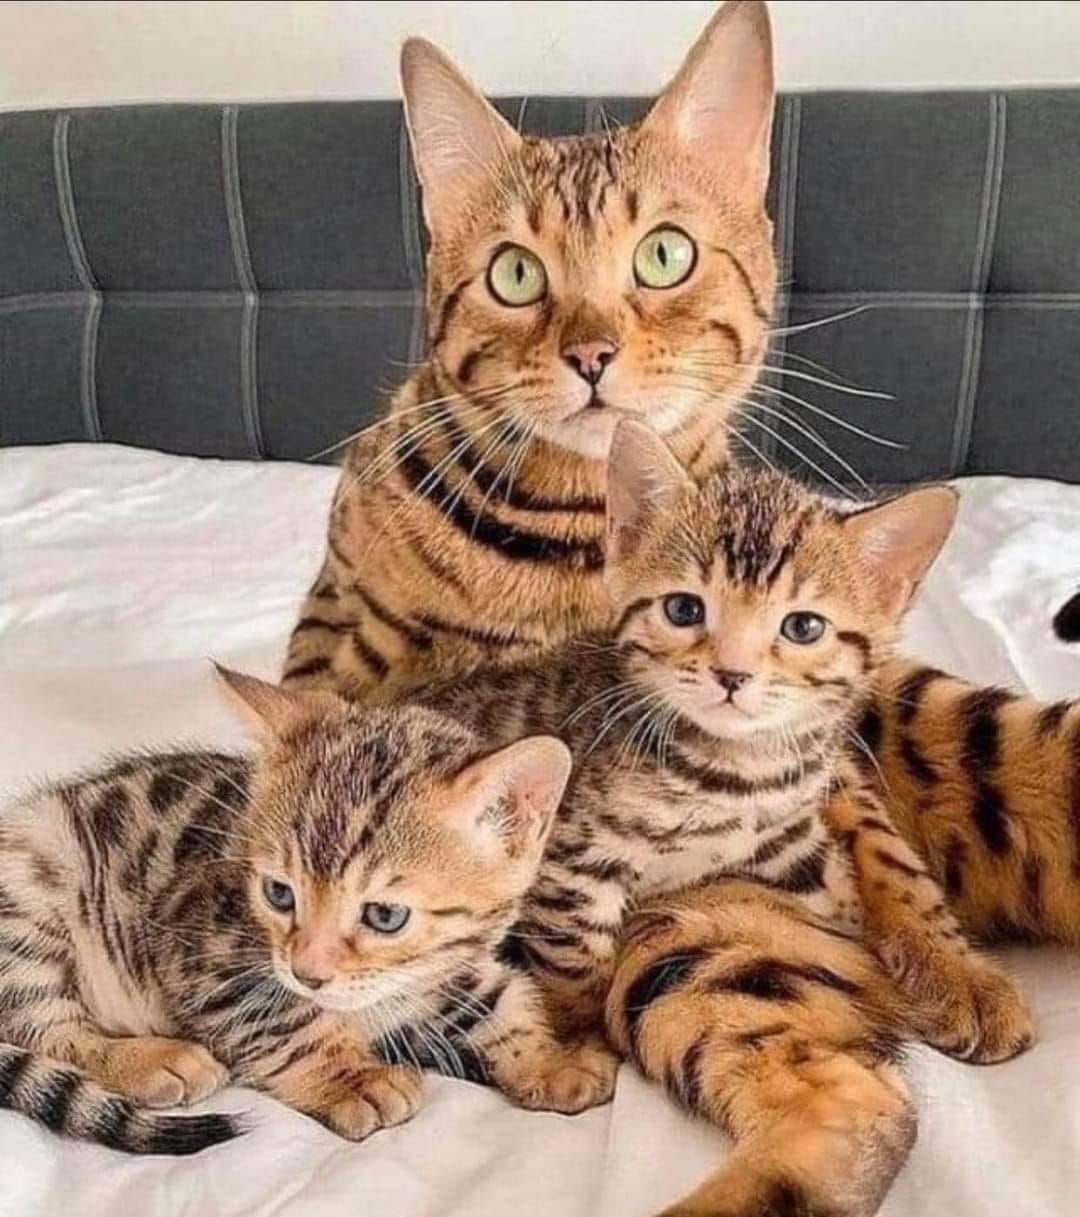 Bengal Cat The Bengal Cat Is A Domesticated Cat Breed Created From Hybrids Of Domestic Cats Especially The Spotte In 2020 Asian Leopard Cat Cute Cats And Kittens Cats